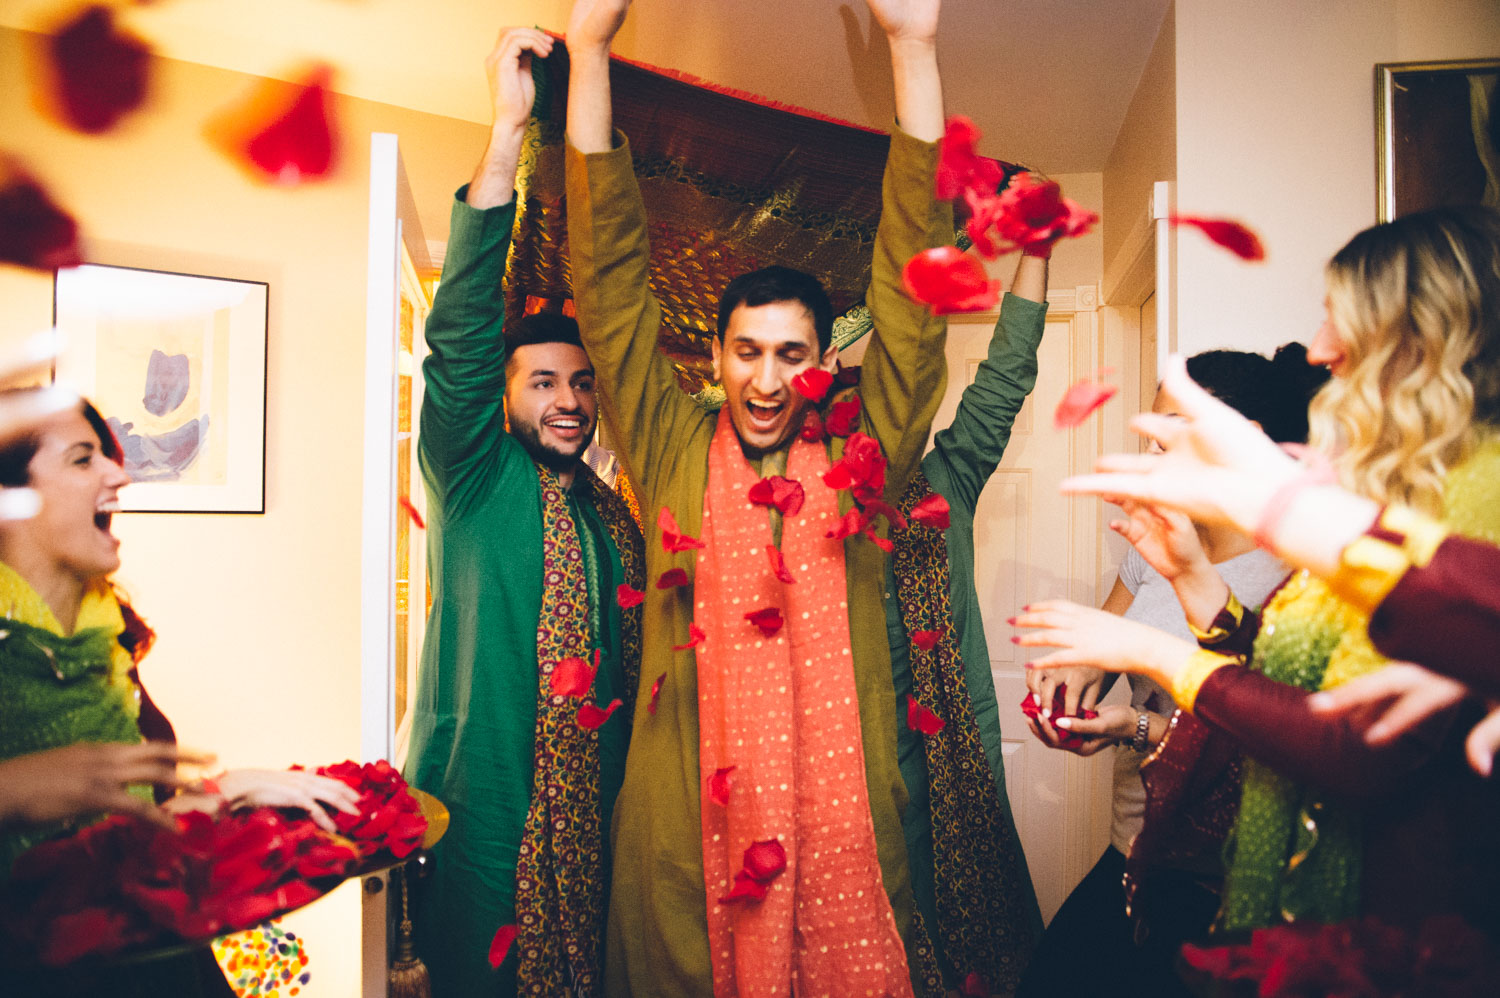 Red roses thrown in celebration as Pakistani groom enters Brides home